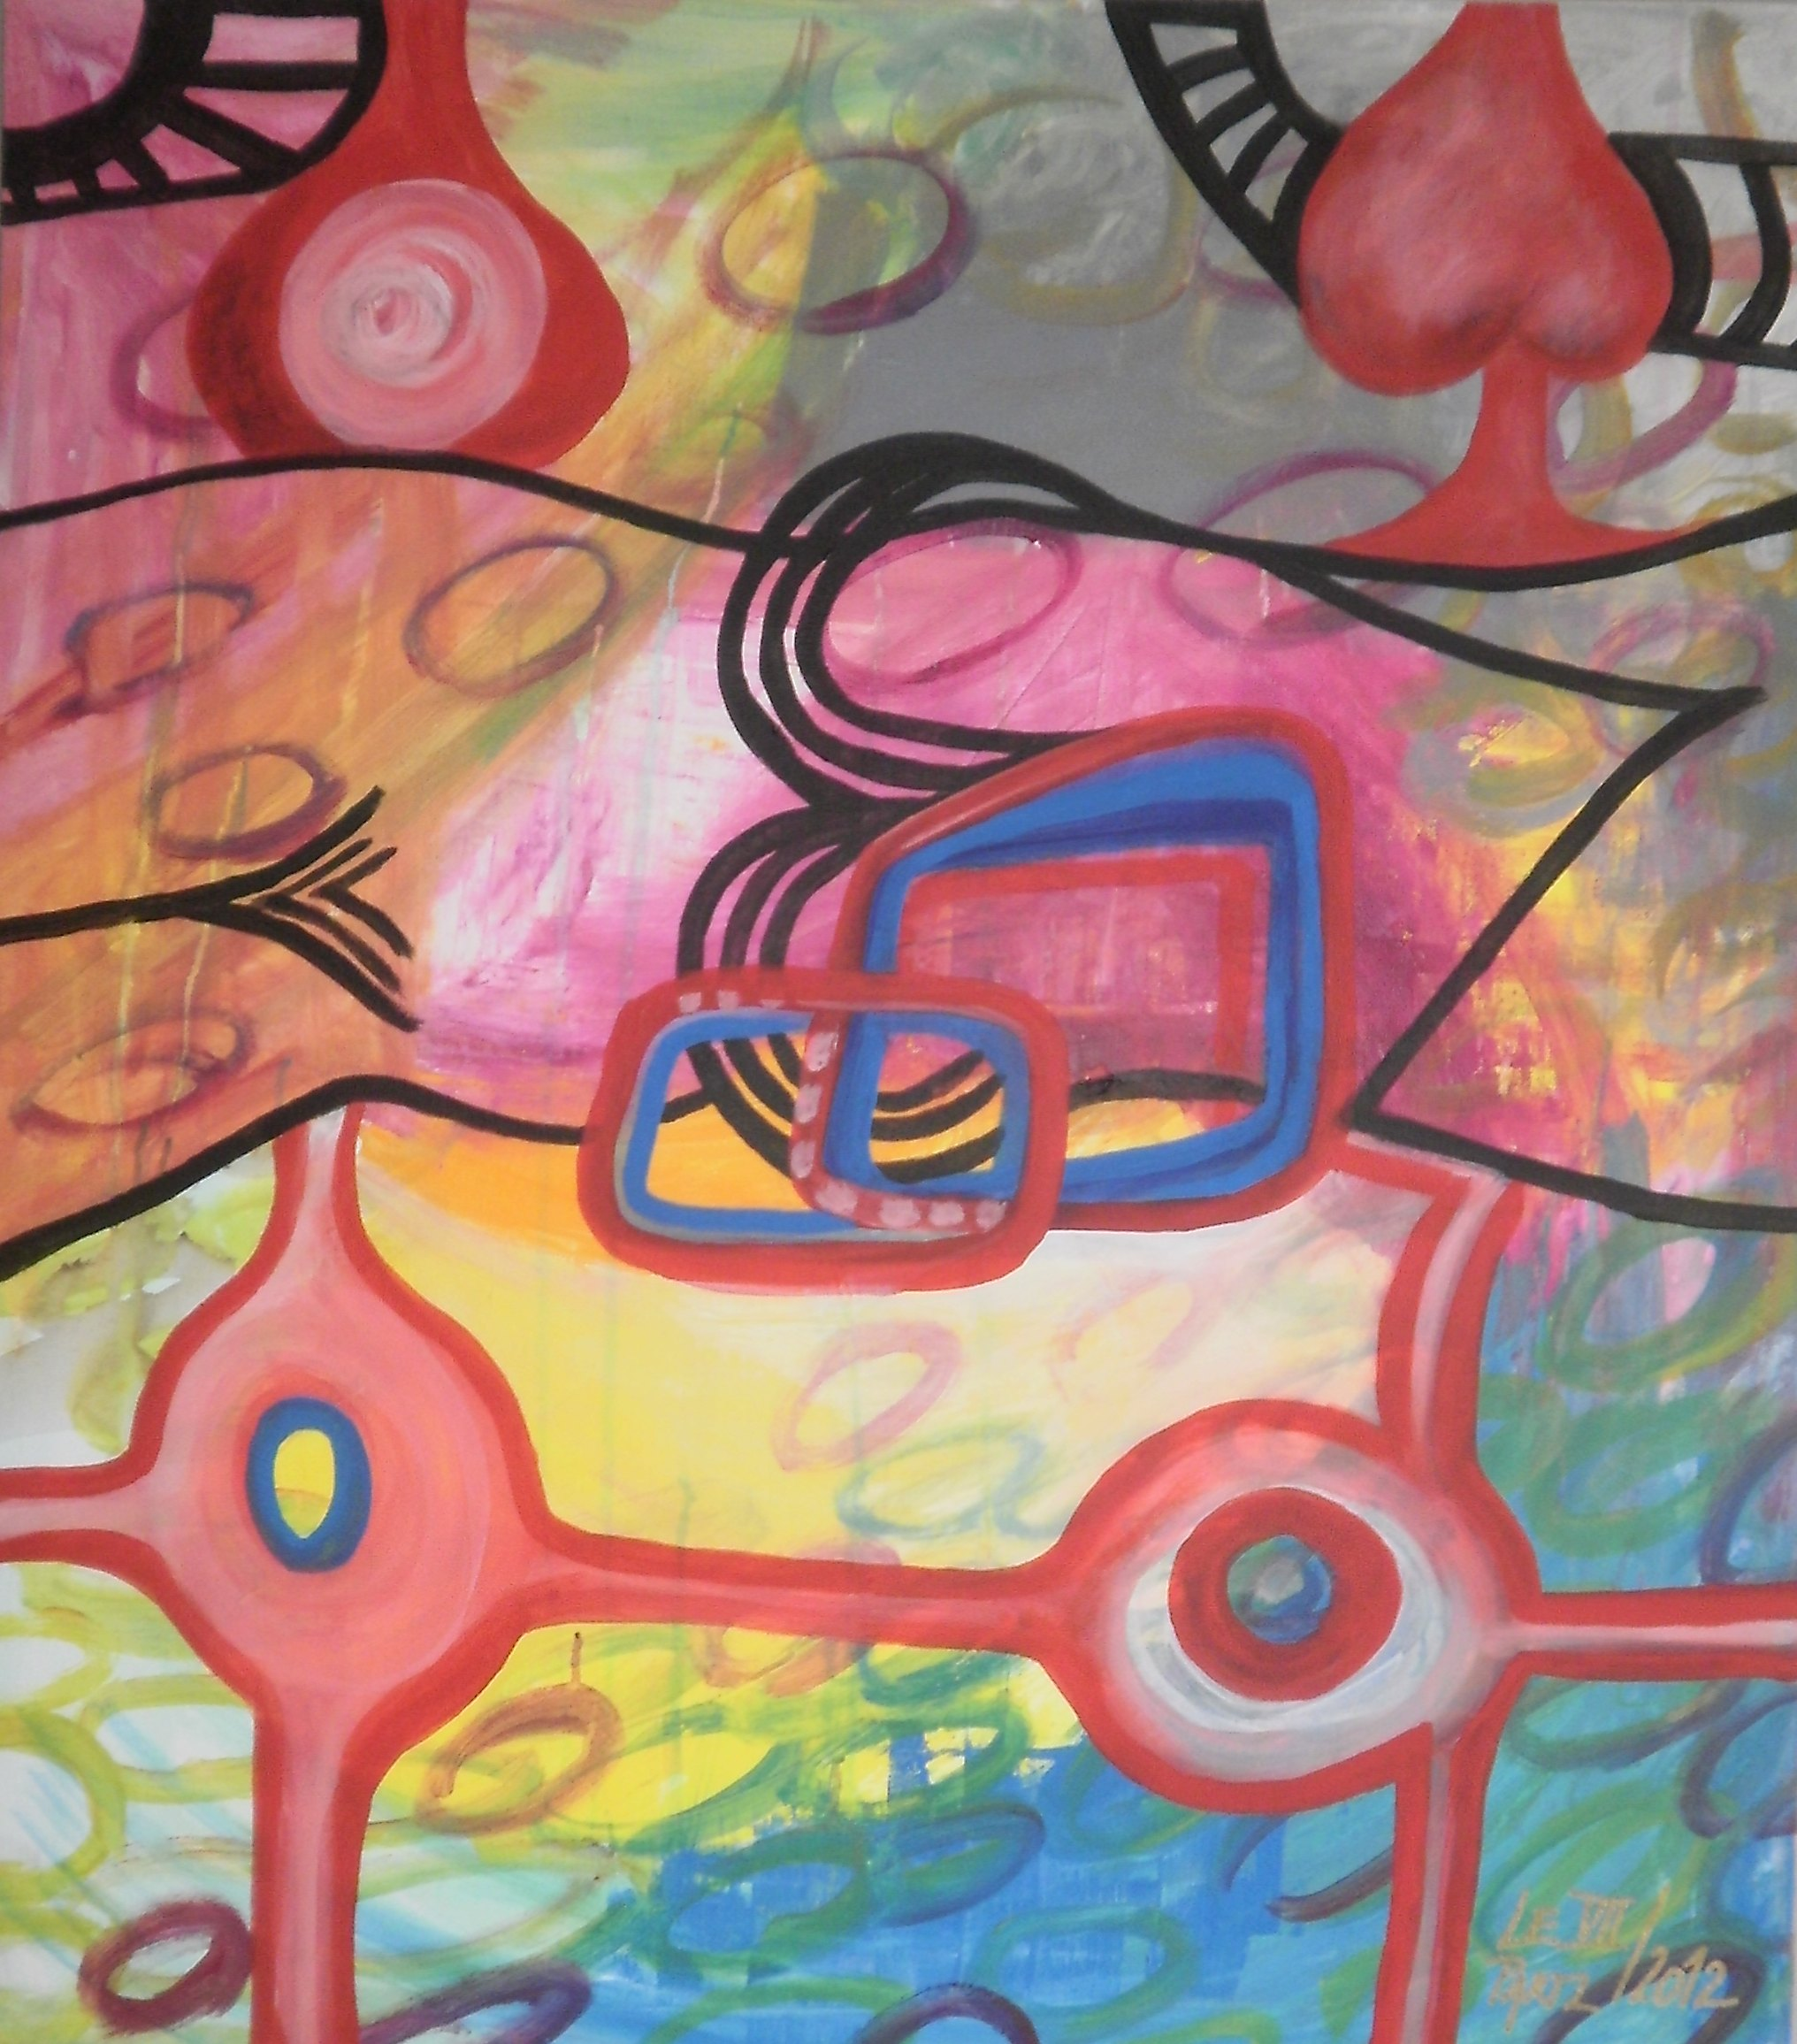 Catch the Fever  artwork by Lenka Le Partl - art listed for sale on Artplode